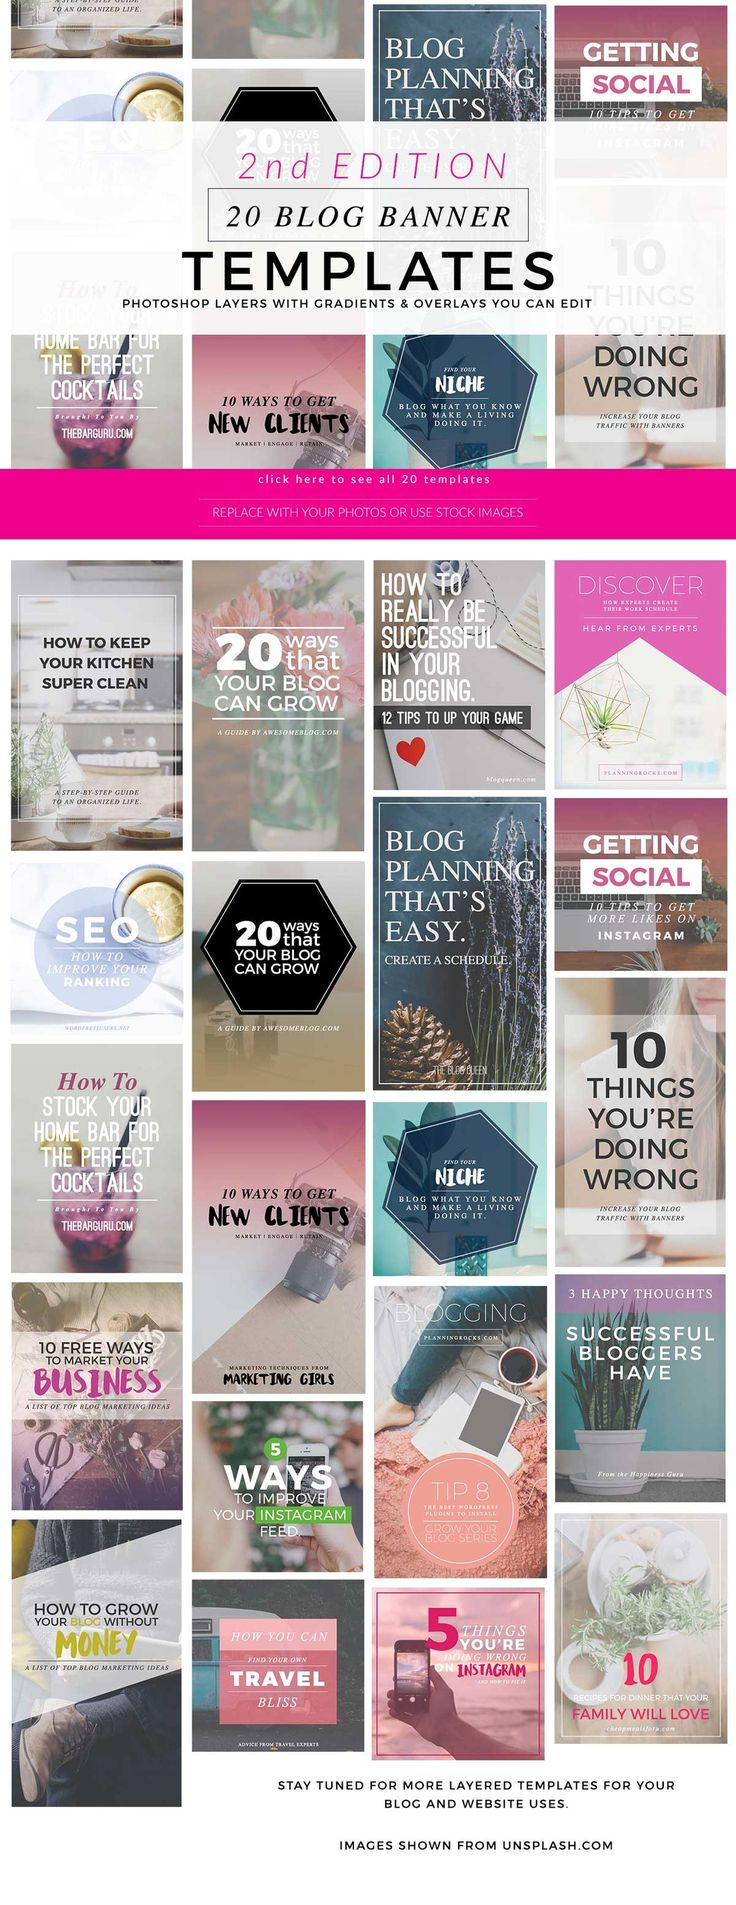 2nd Edition Blogging and Pinterest or Instagram Banner Templates UPDATED SIZE! 1000 pixels wide! Looking to make your websites and blogs more professional looking with attractive graphics